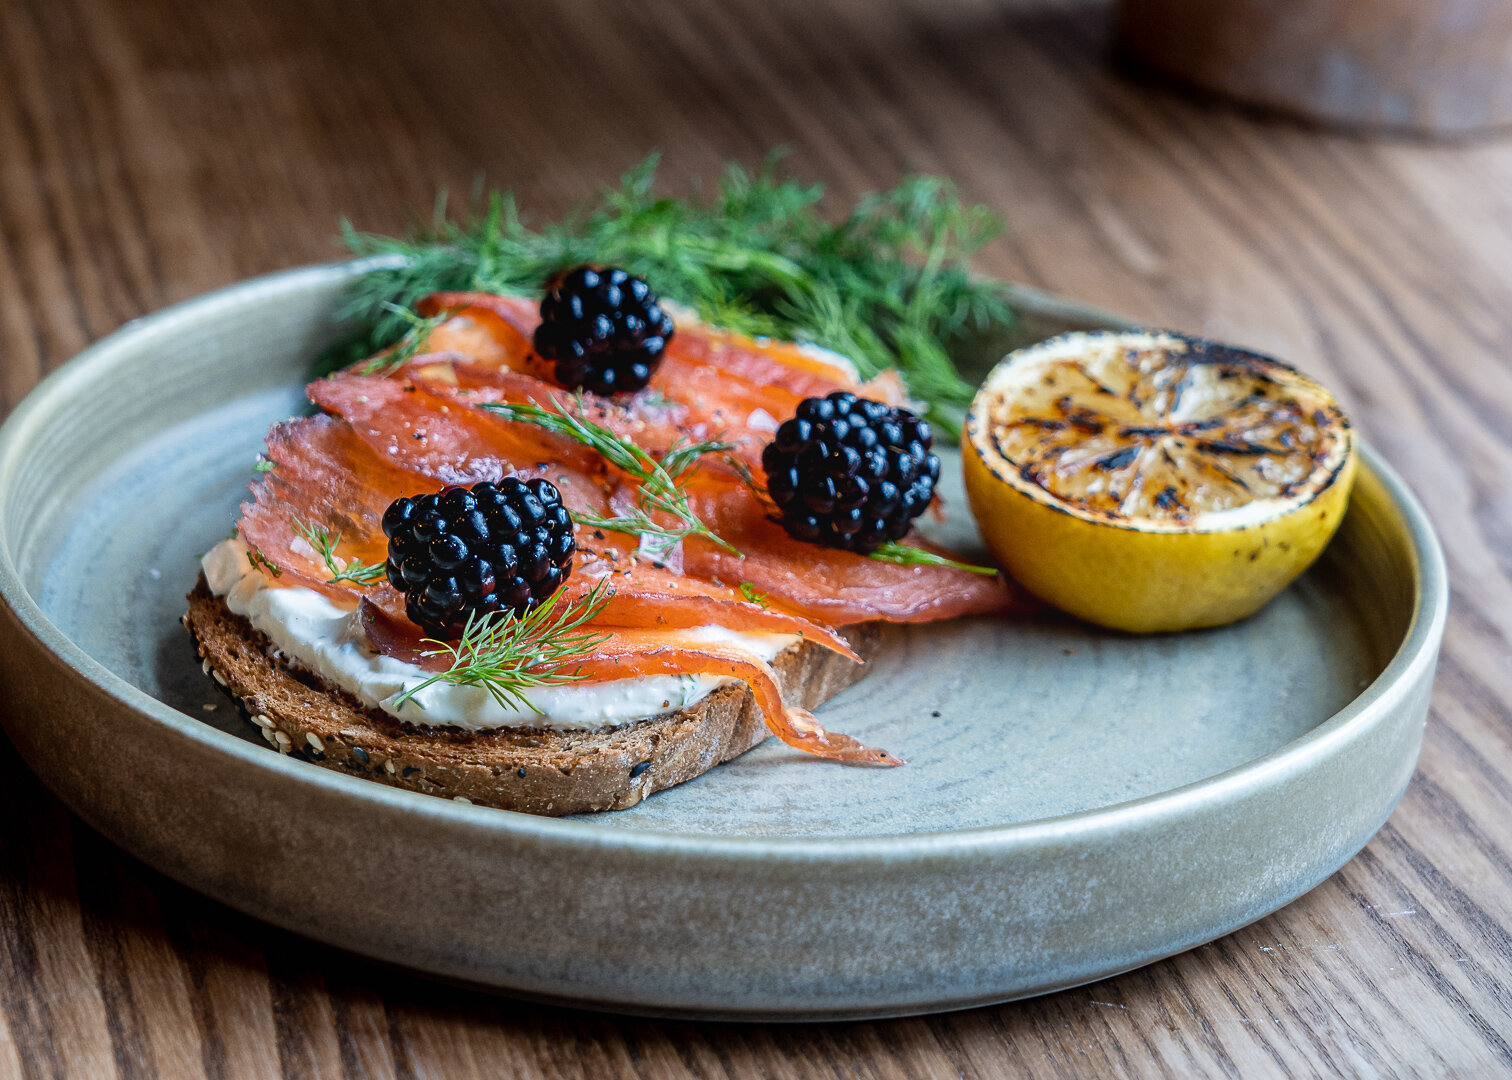 Black Forest Gin salmon gravadlax from the fish section. Image credit: Gram Social